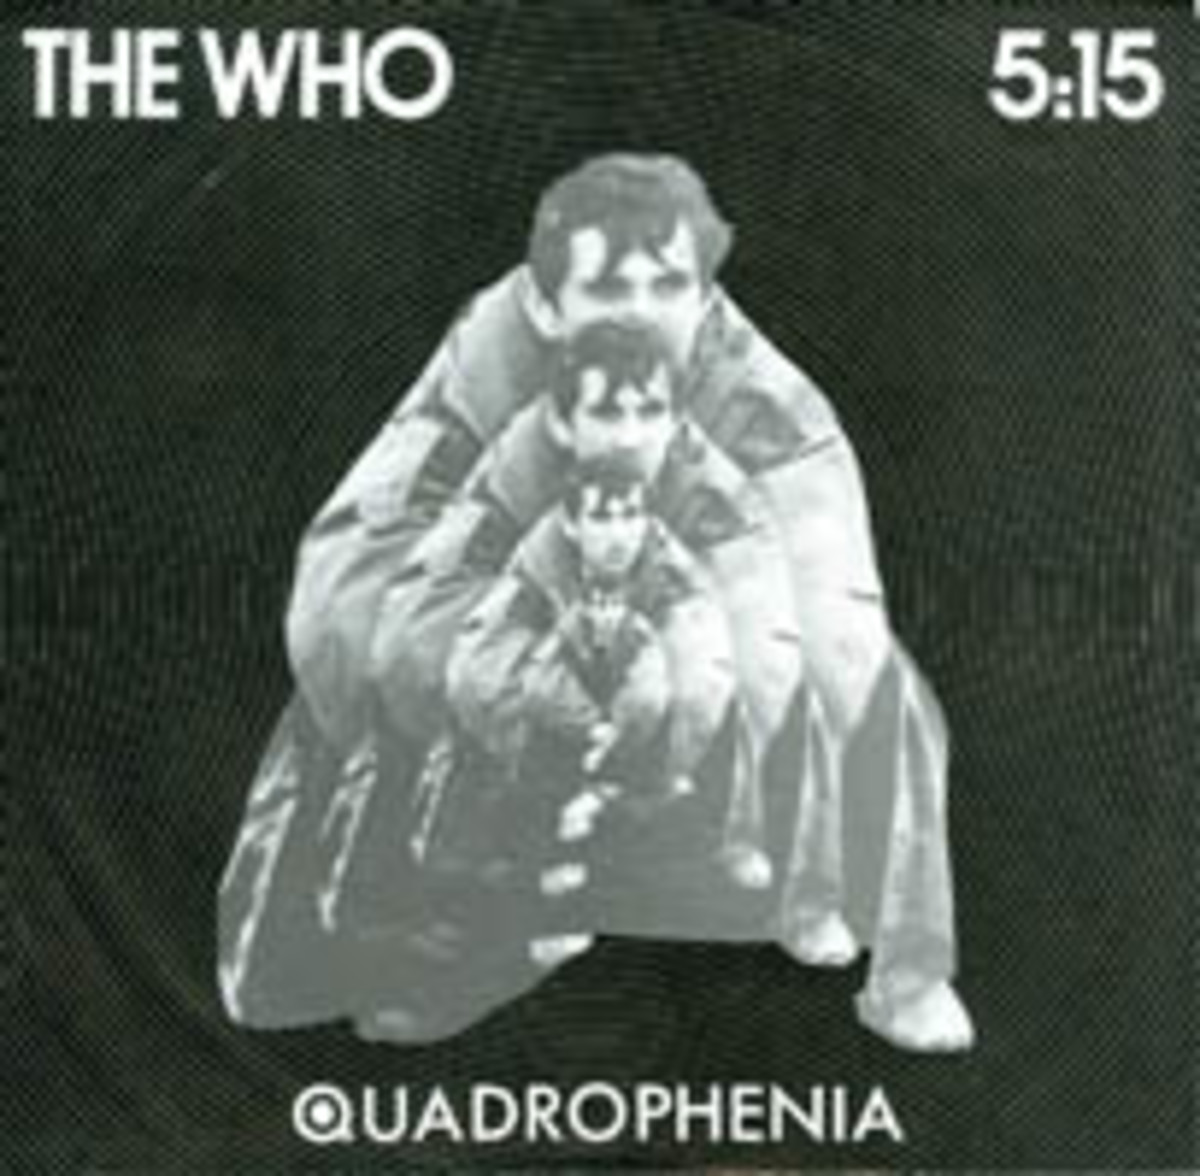 The Who 515 Quadrophenia picture sleeve